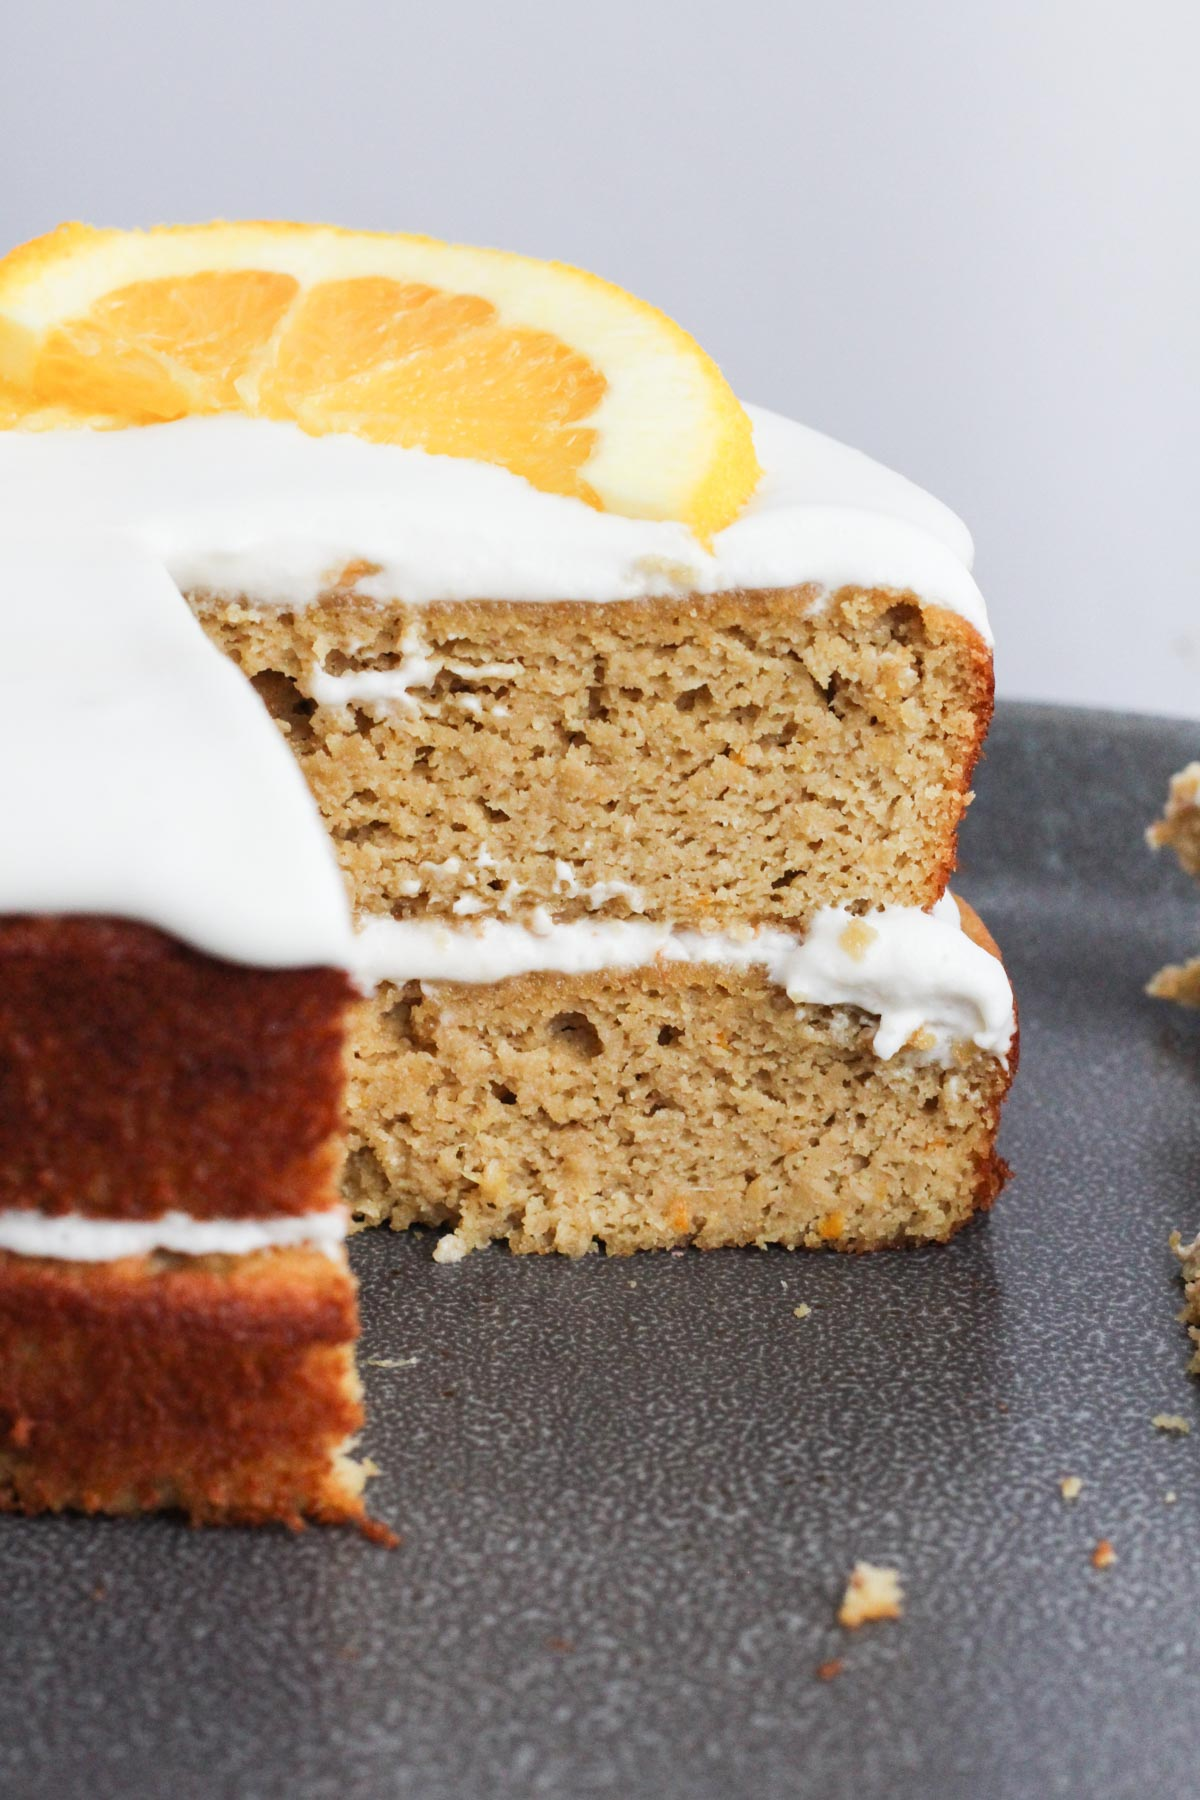 Gluten-free orange cake layered with coconut whipped cream and orange slices on top.